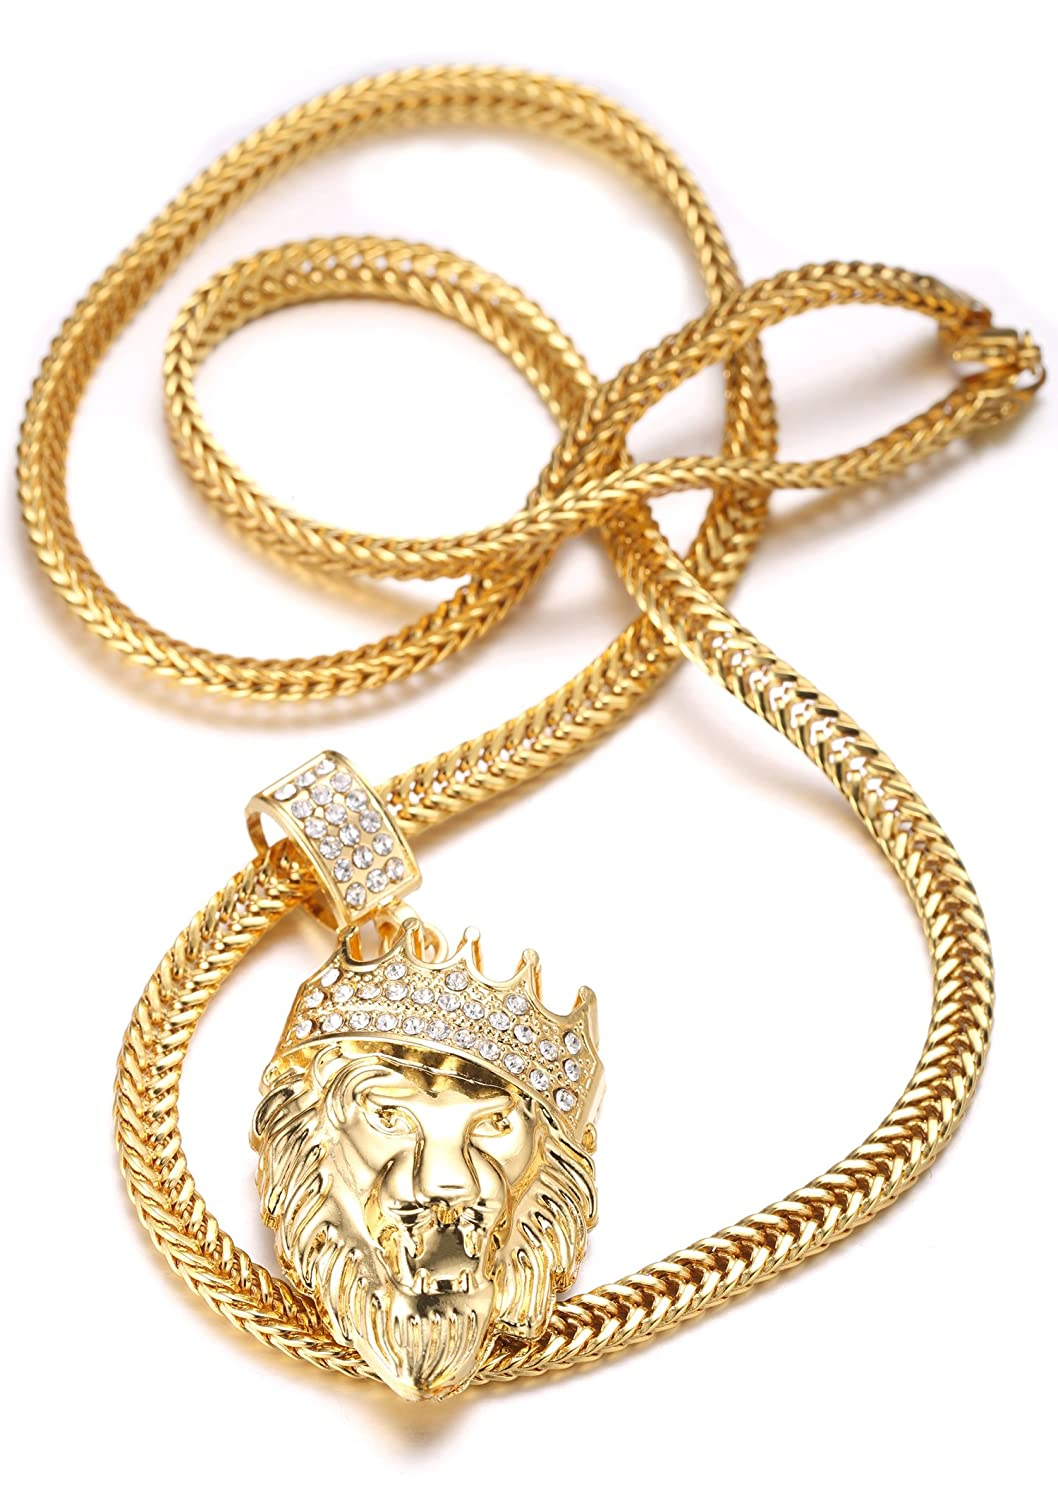 Halukakah mens 18k real gold plated kings landing crown lion halukakah mens 18k real gold plated kings landing crown lion pendant necklacecz inlaywith free fishtail chain 30 amazon jewellery aloadofball Choice Image